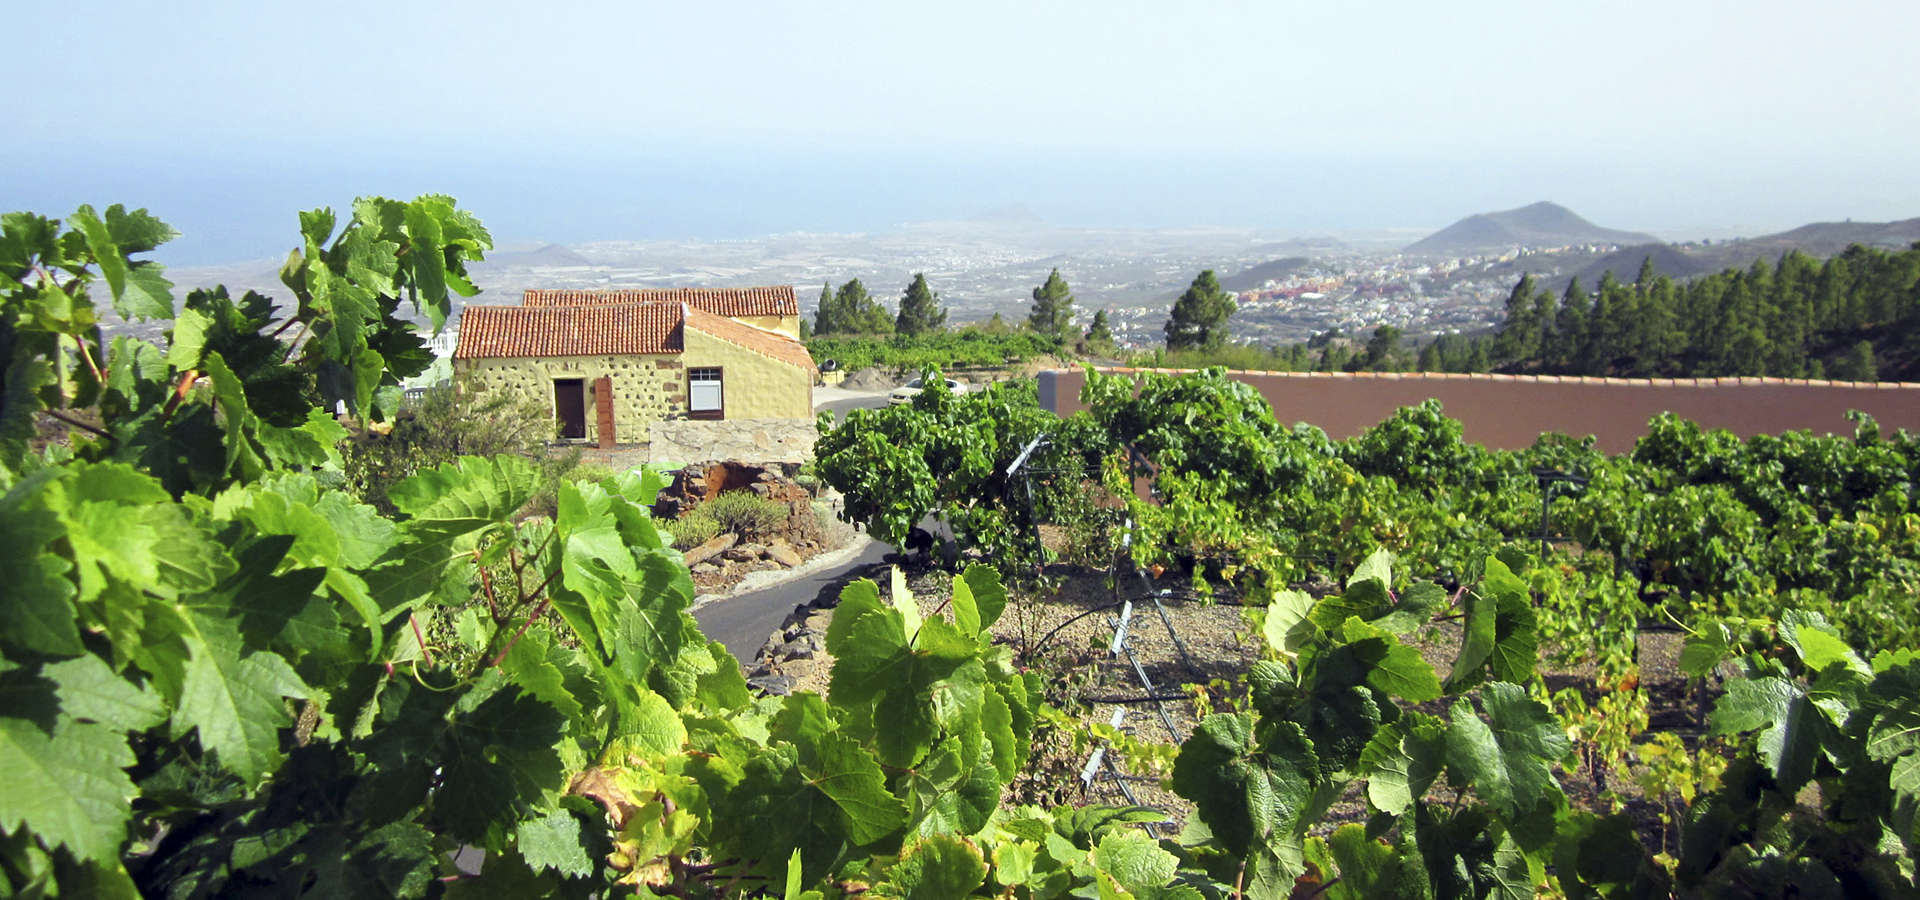 727. Finca with three houses in Granadilla de Abona